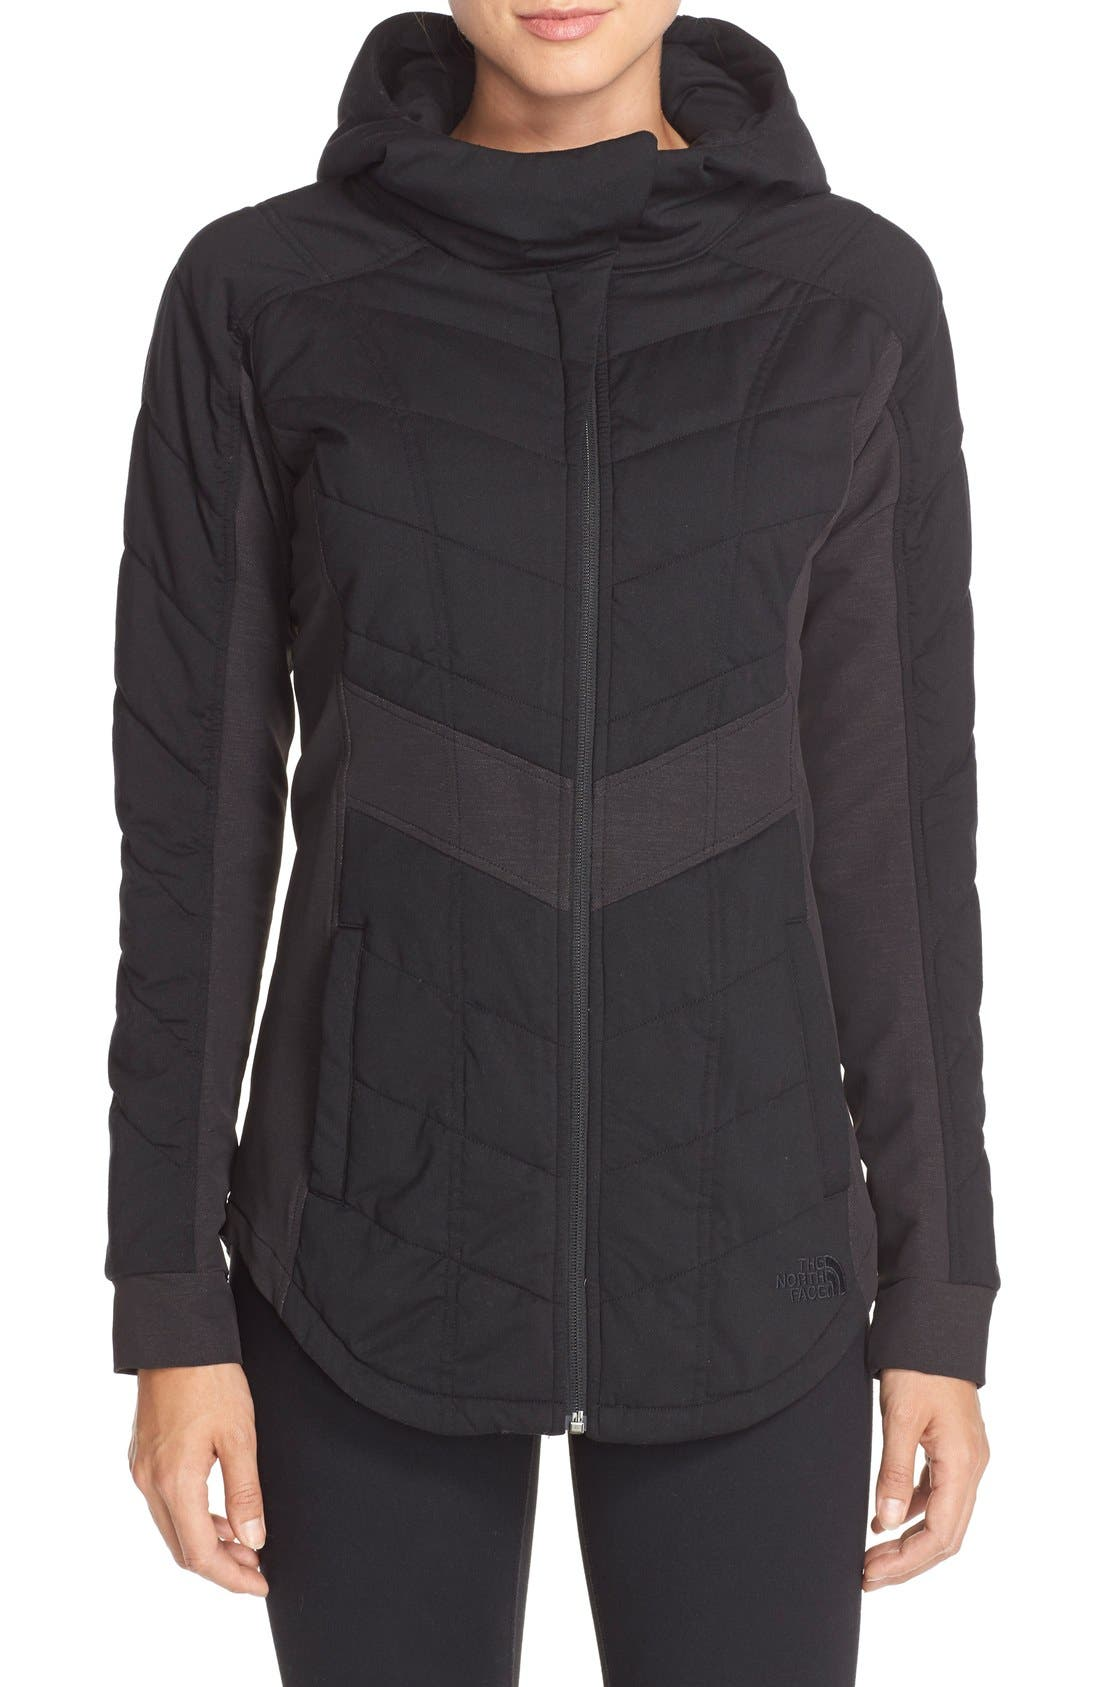 THE NORTH FACE 'Pseudio' Hooded Jacket, Main, color, 001